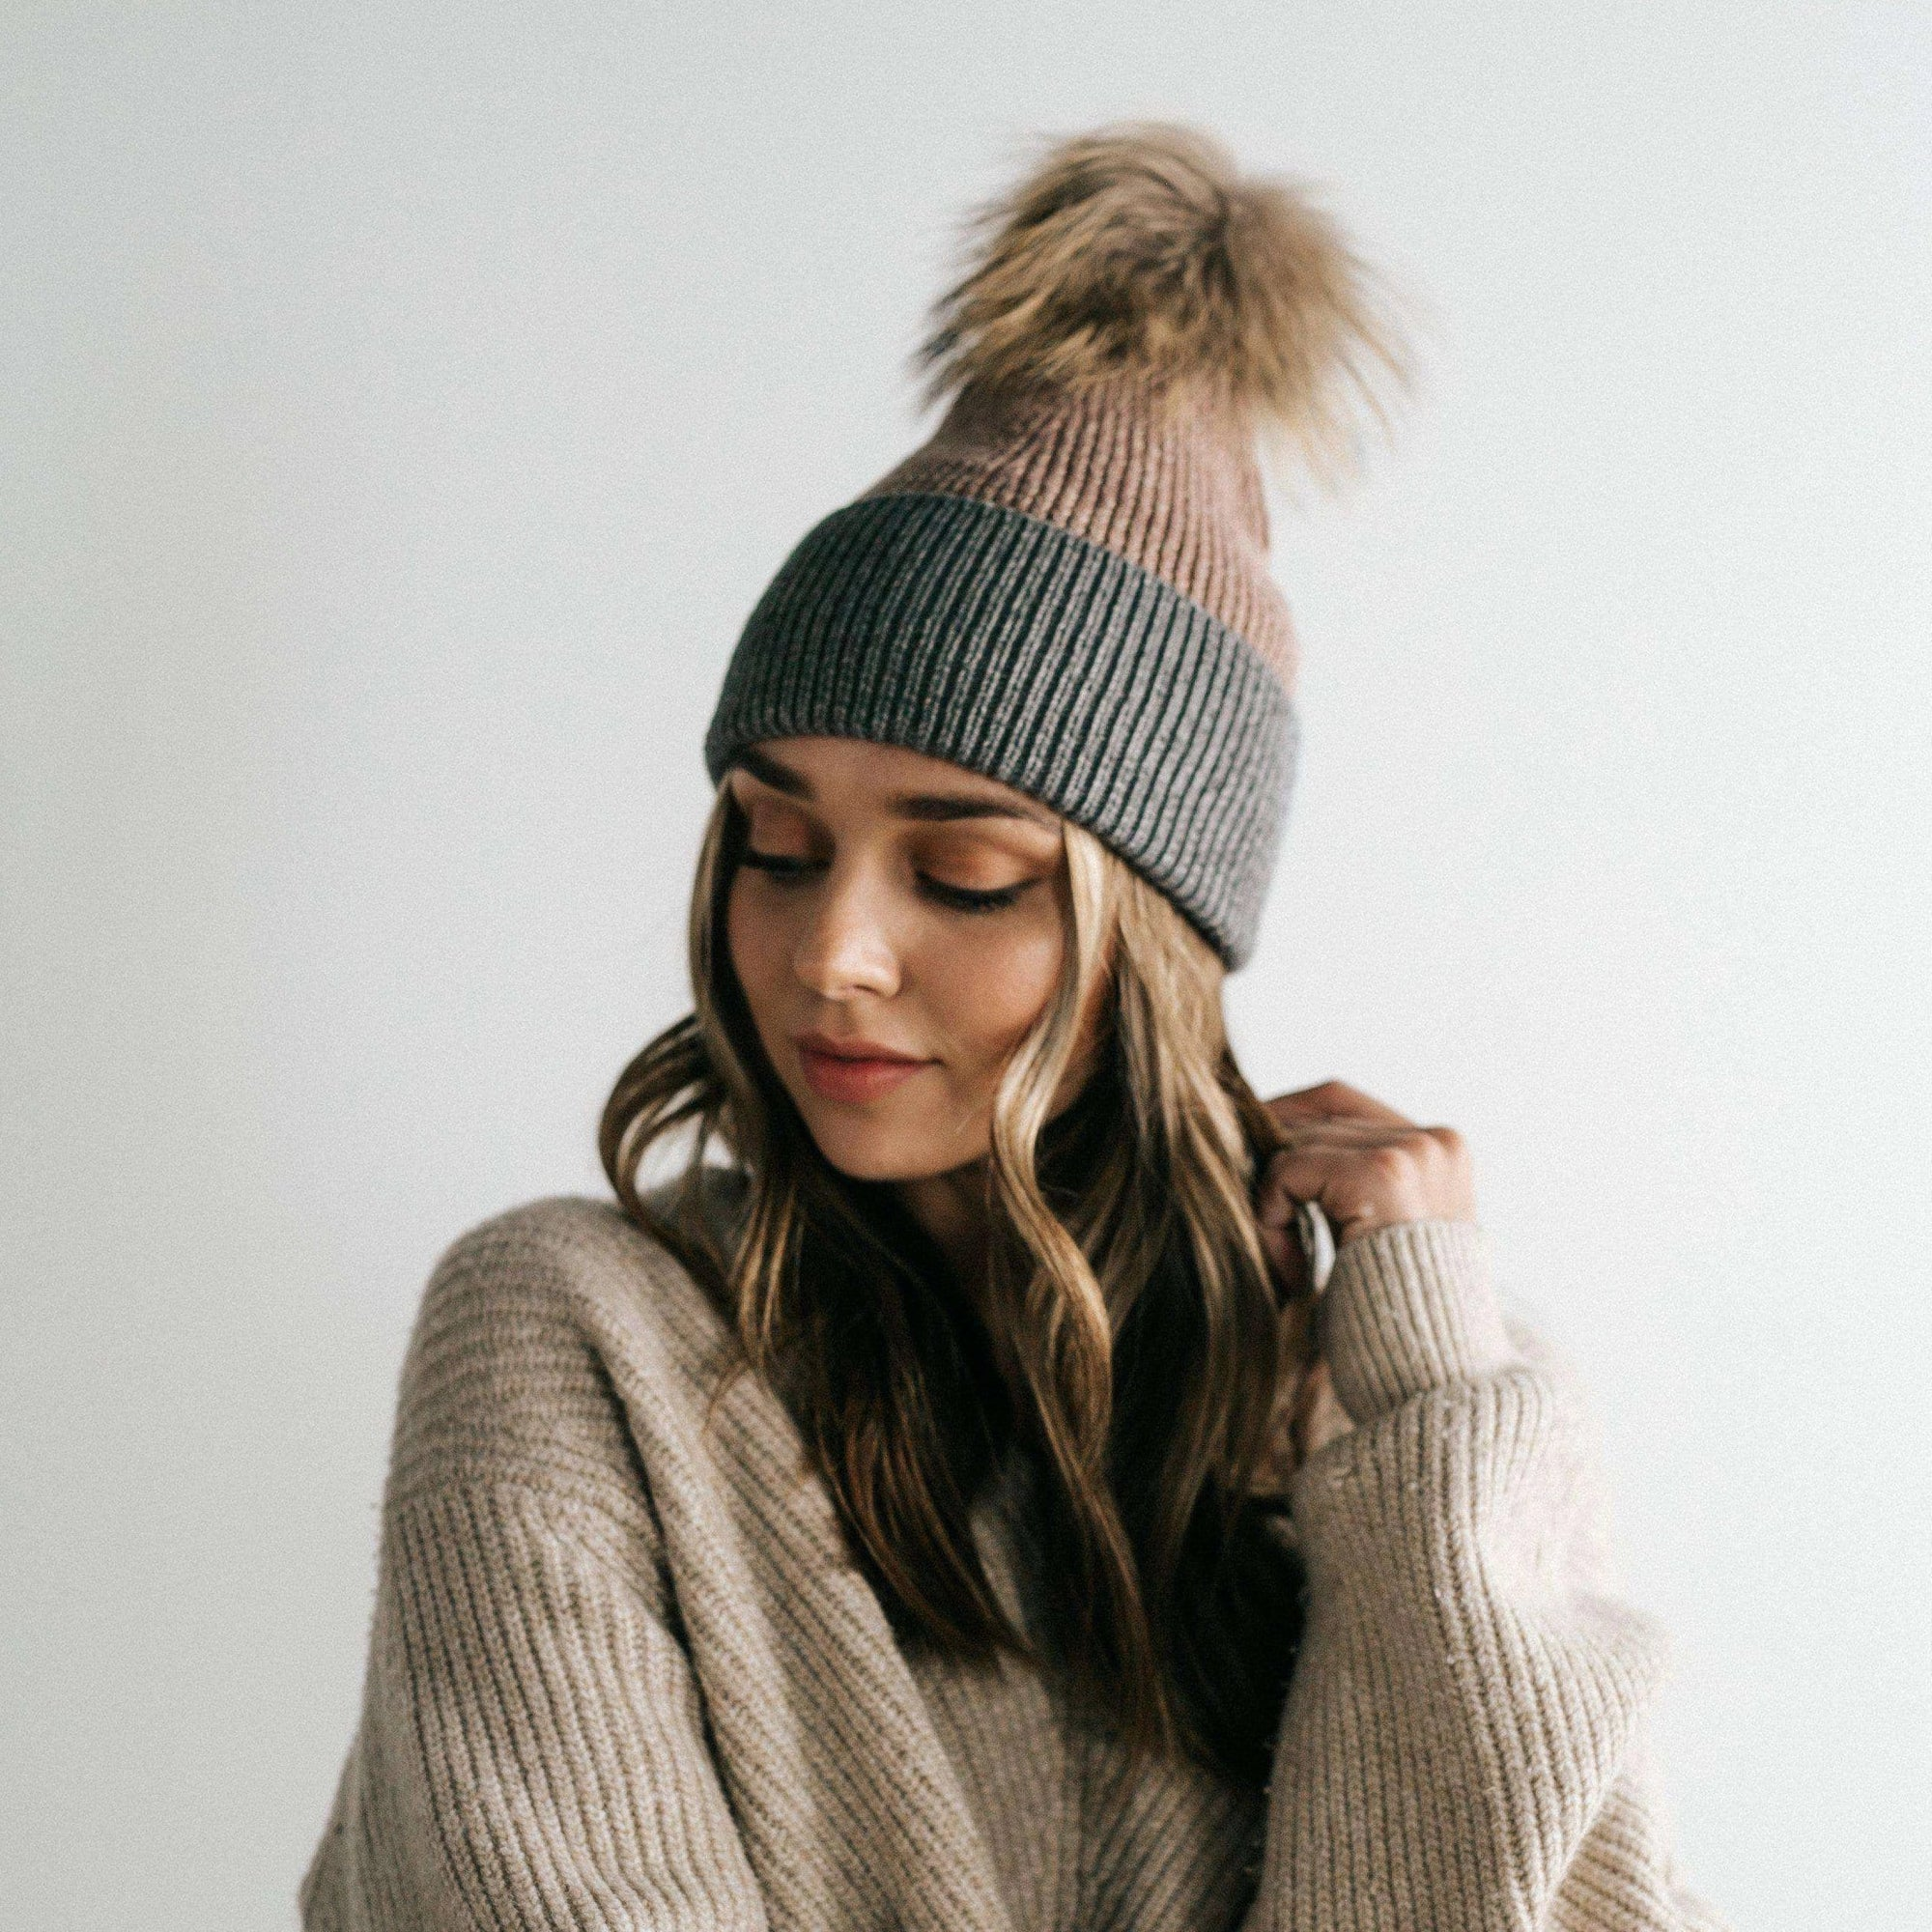 GIGI PIP Hats for Women- Dann Beanie - Taupe and Grey-Beanie